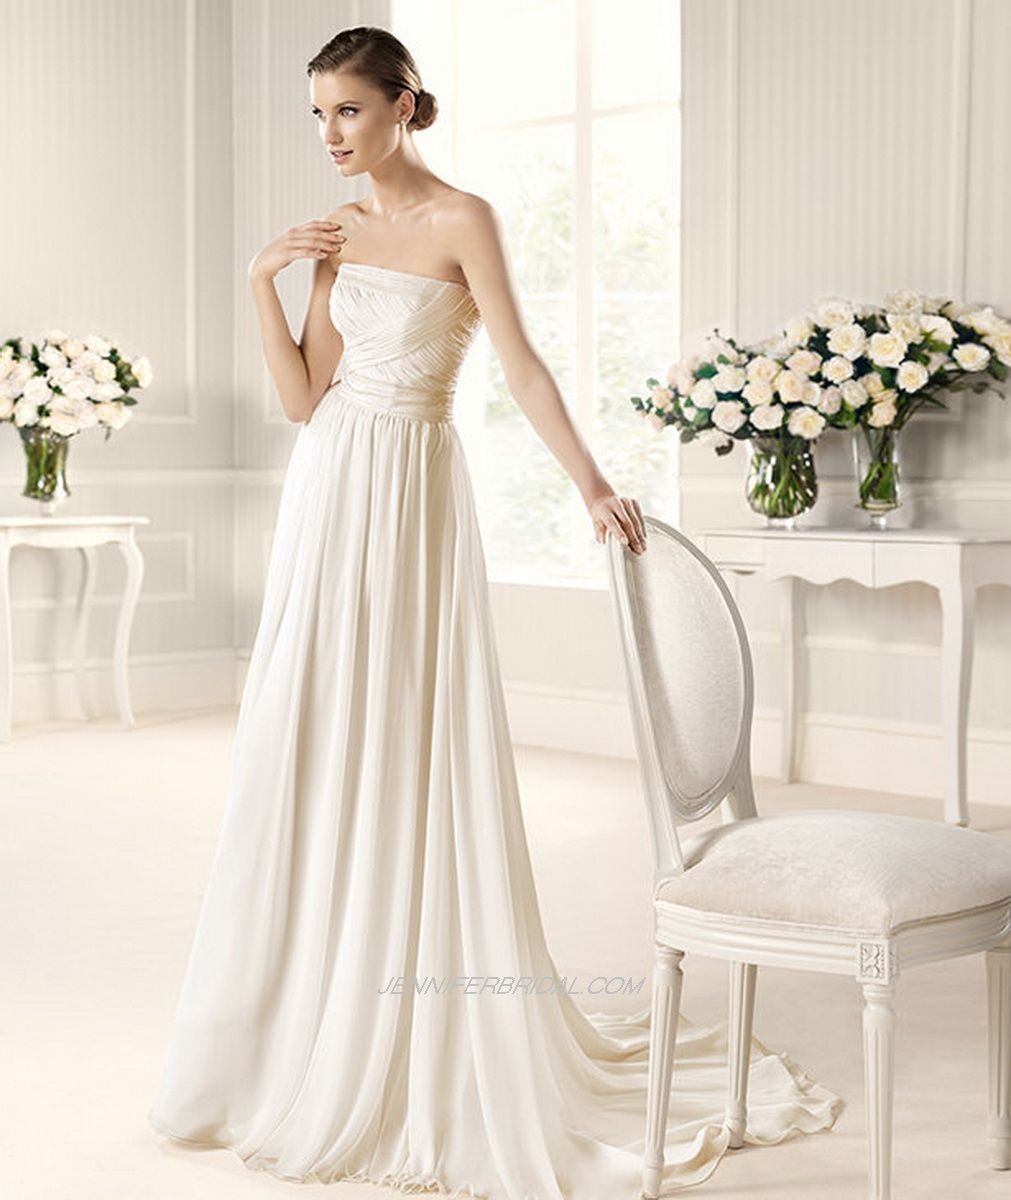 La sposa bridal gown style museo weddings pinterest la sposa